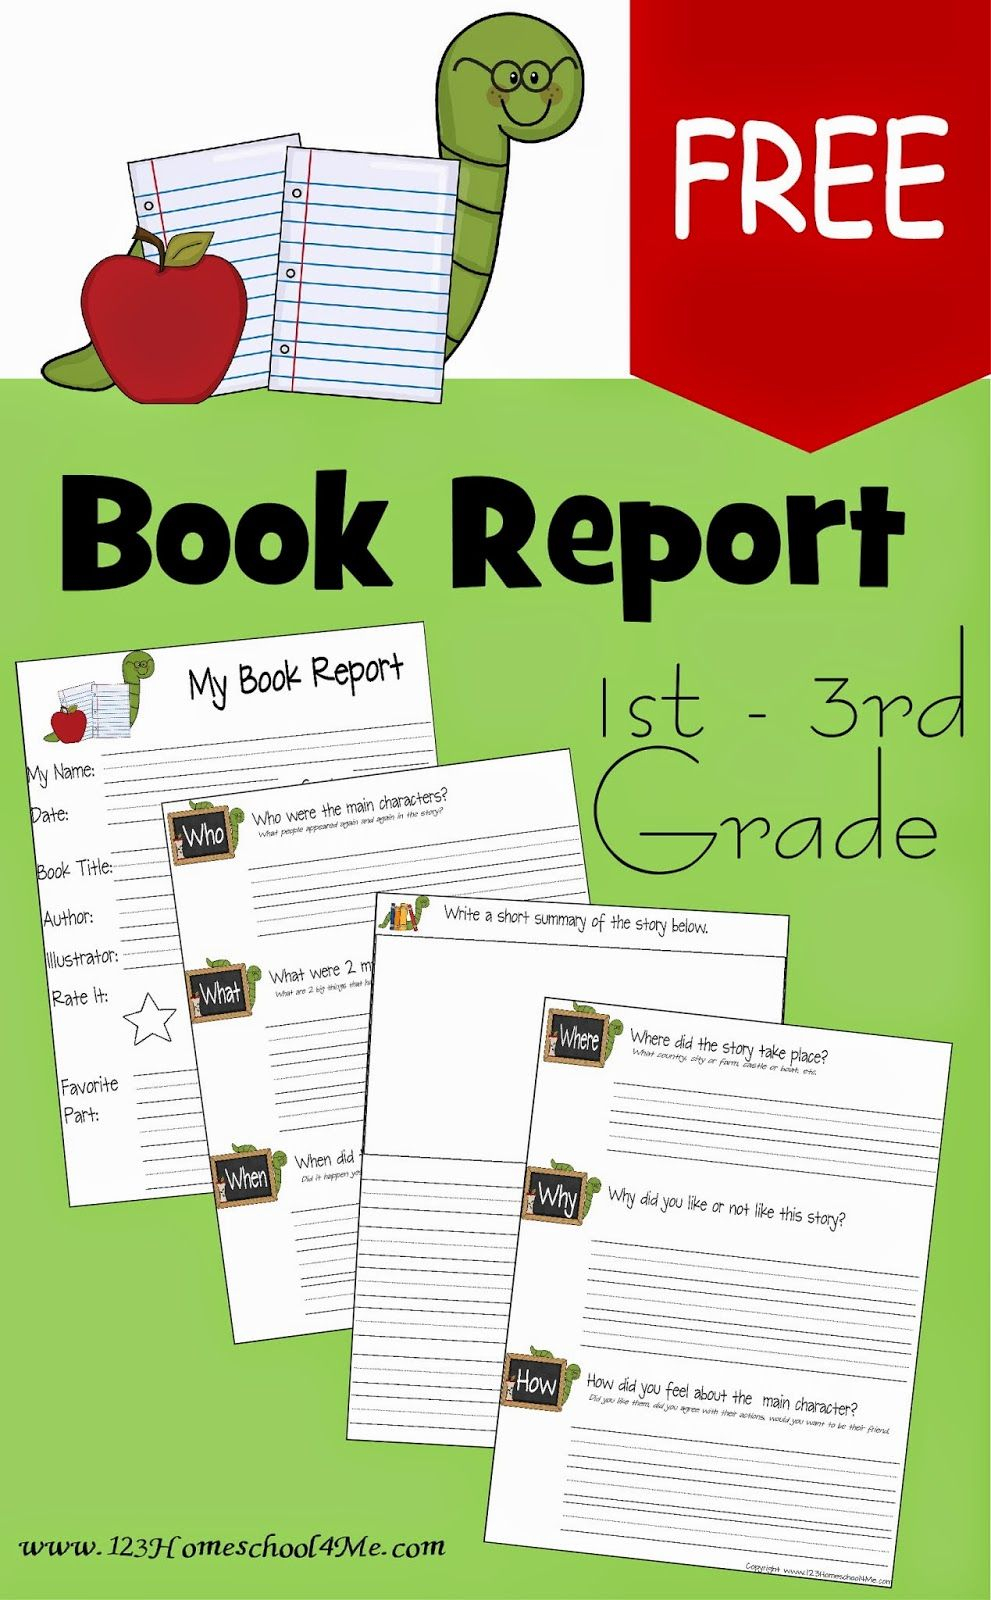 Free Book Report Template   Play Activities For Kids   3Rd Grade - Free Printable Book Report Forms For Second Grade